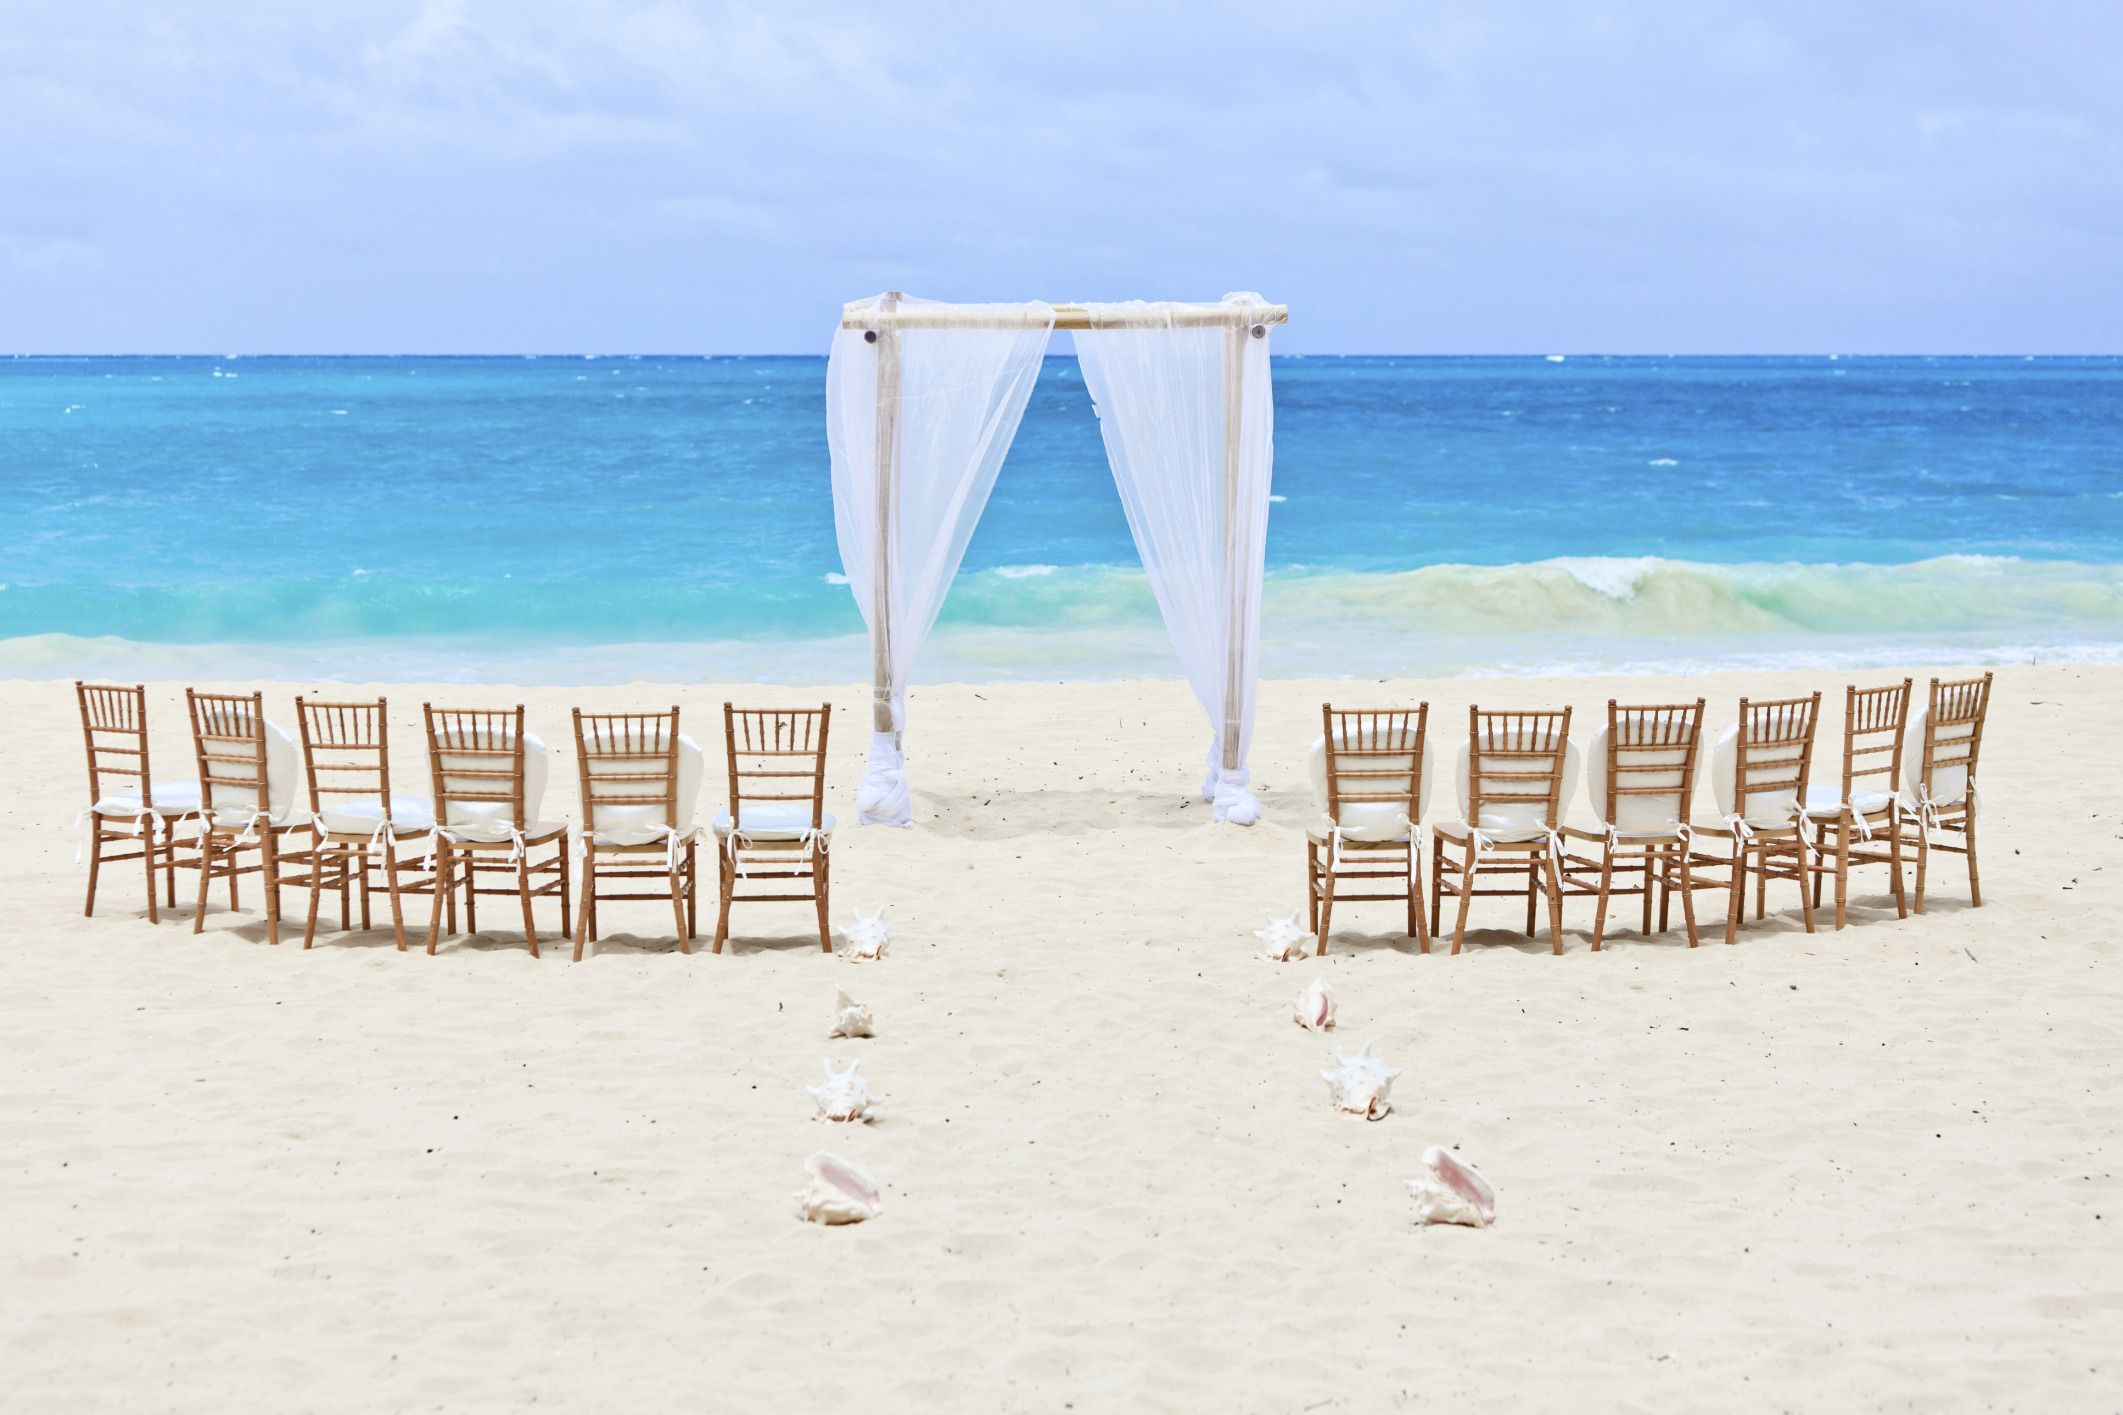 Another reason to choose Sandals Resorts for your wedding